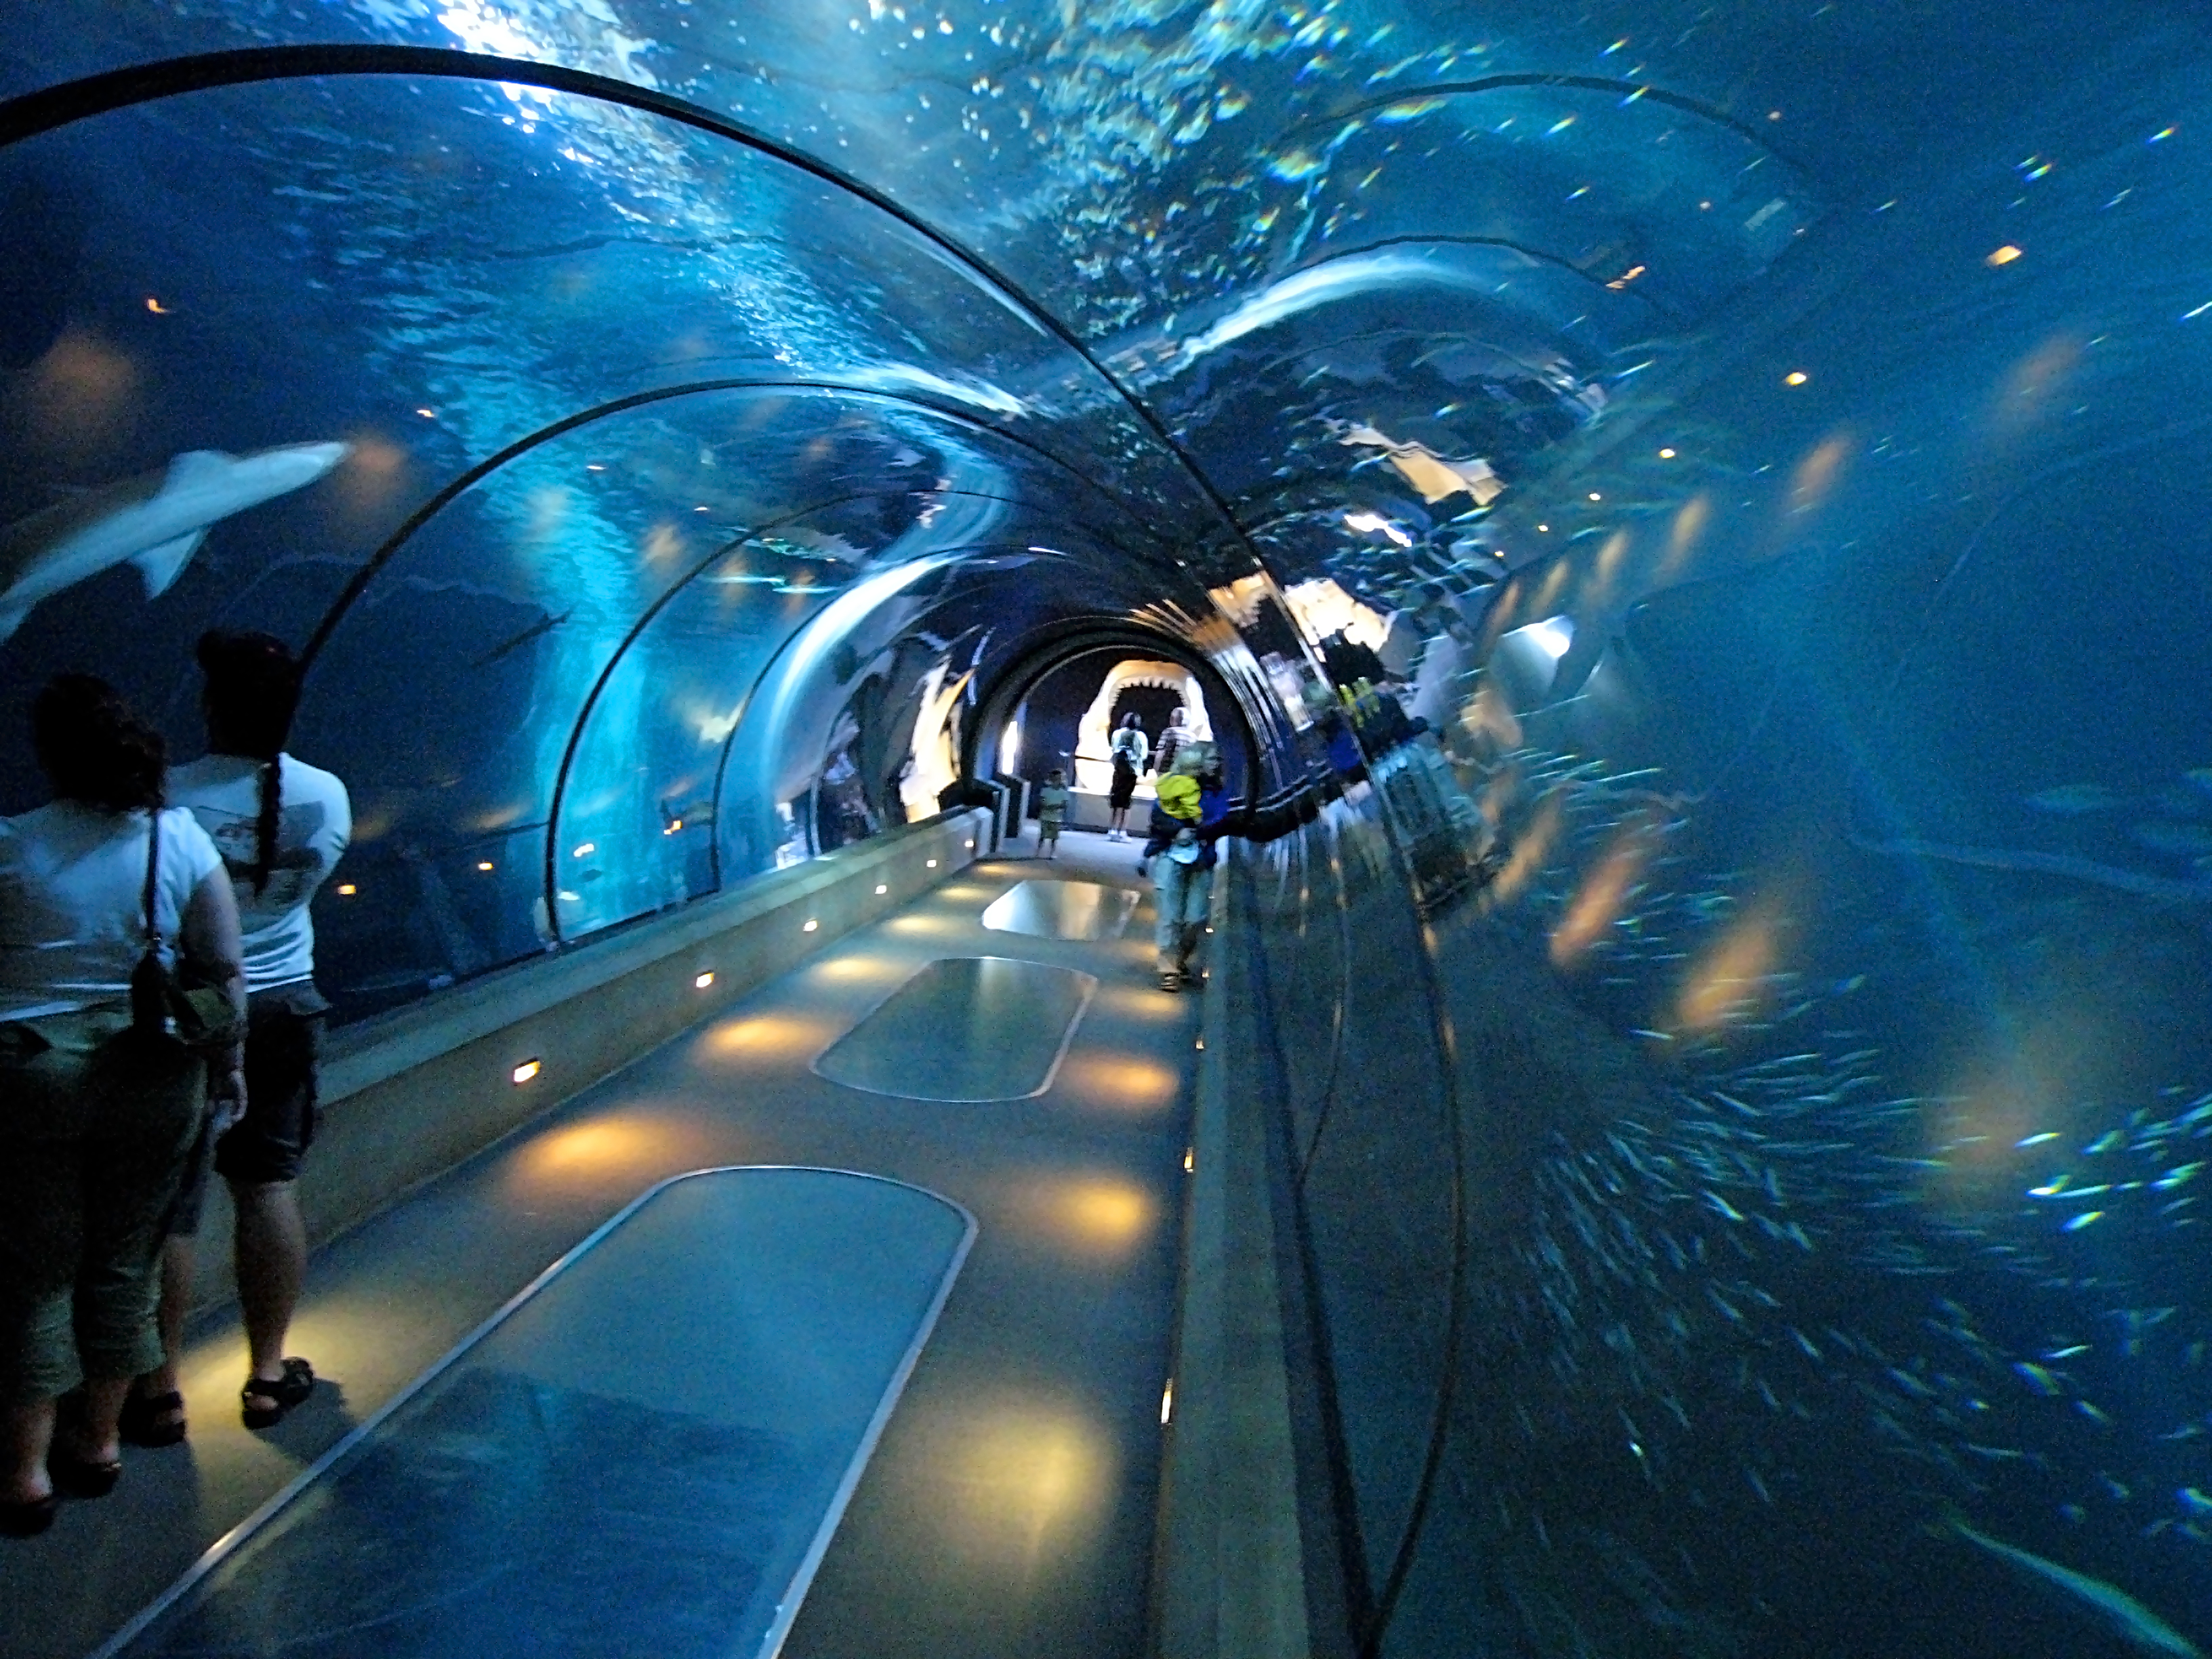 Description Aquarium tunnel.jpg